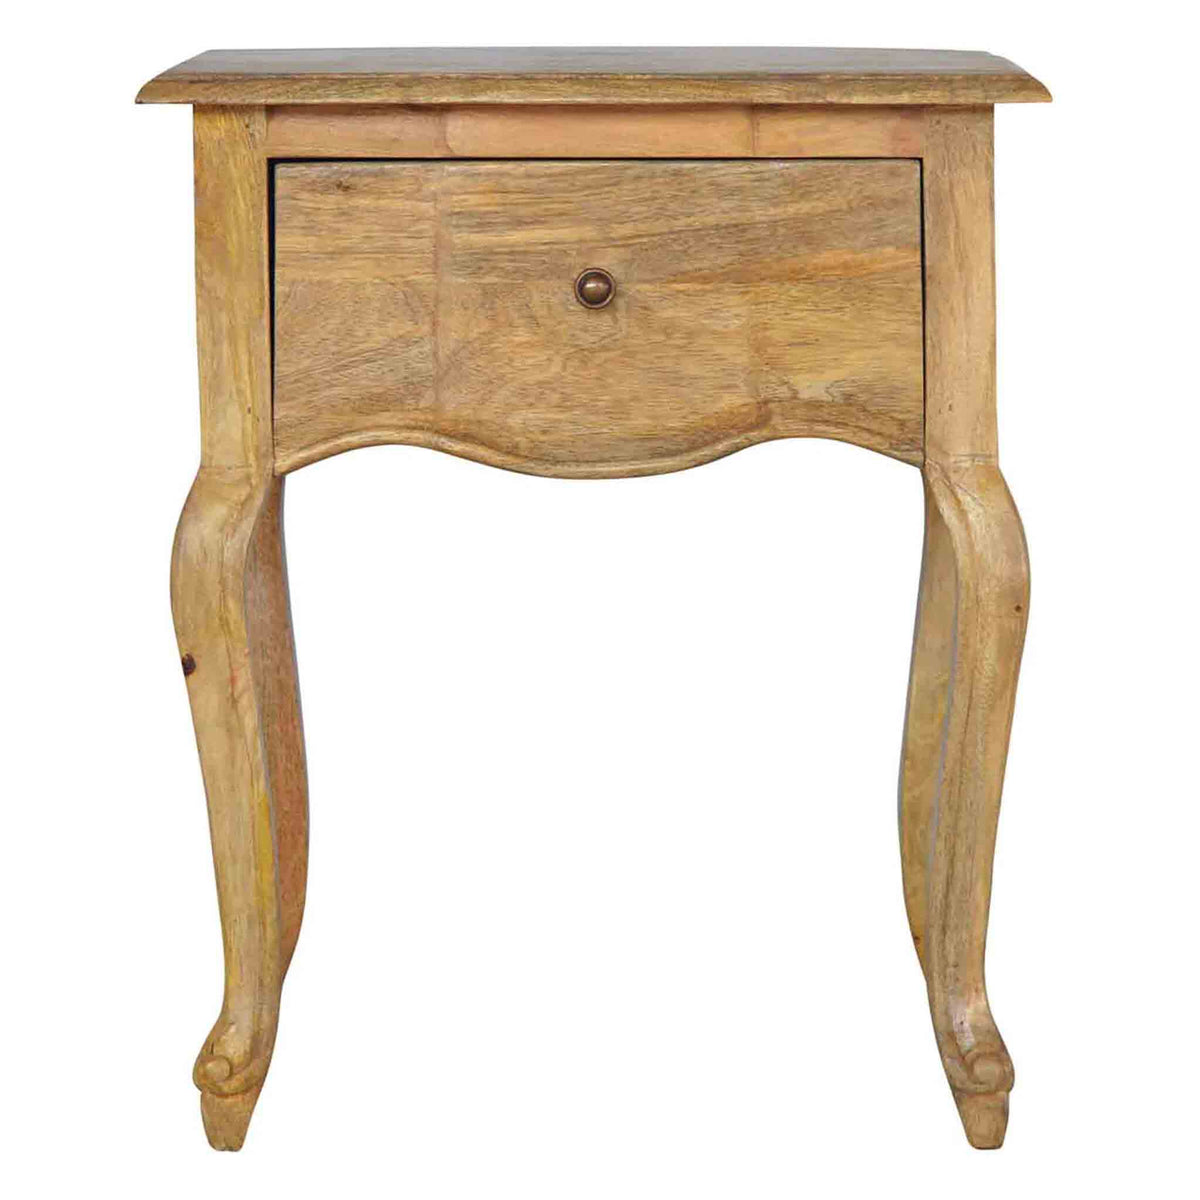 The Artisan French Style 1 Drawer Wooden Bedside Table